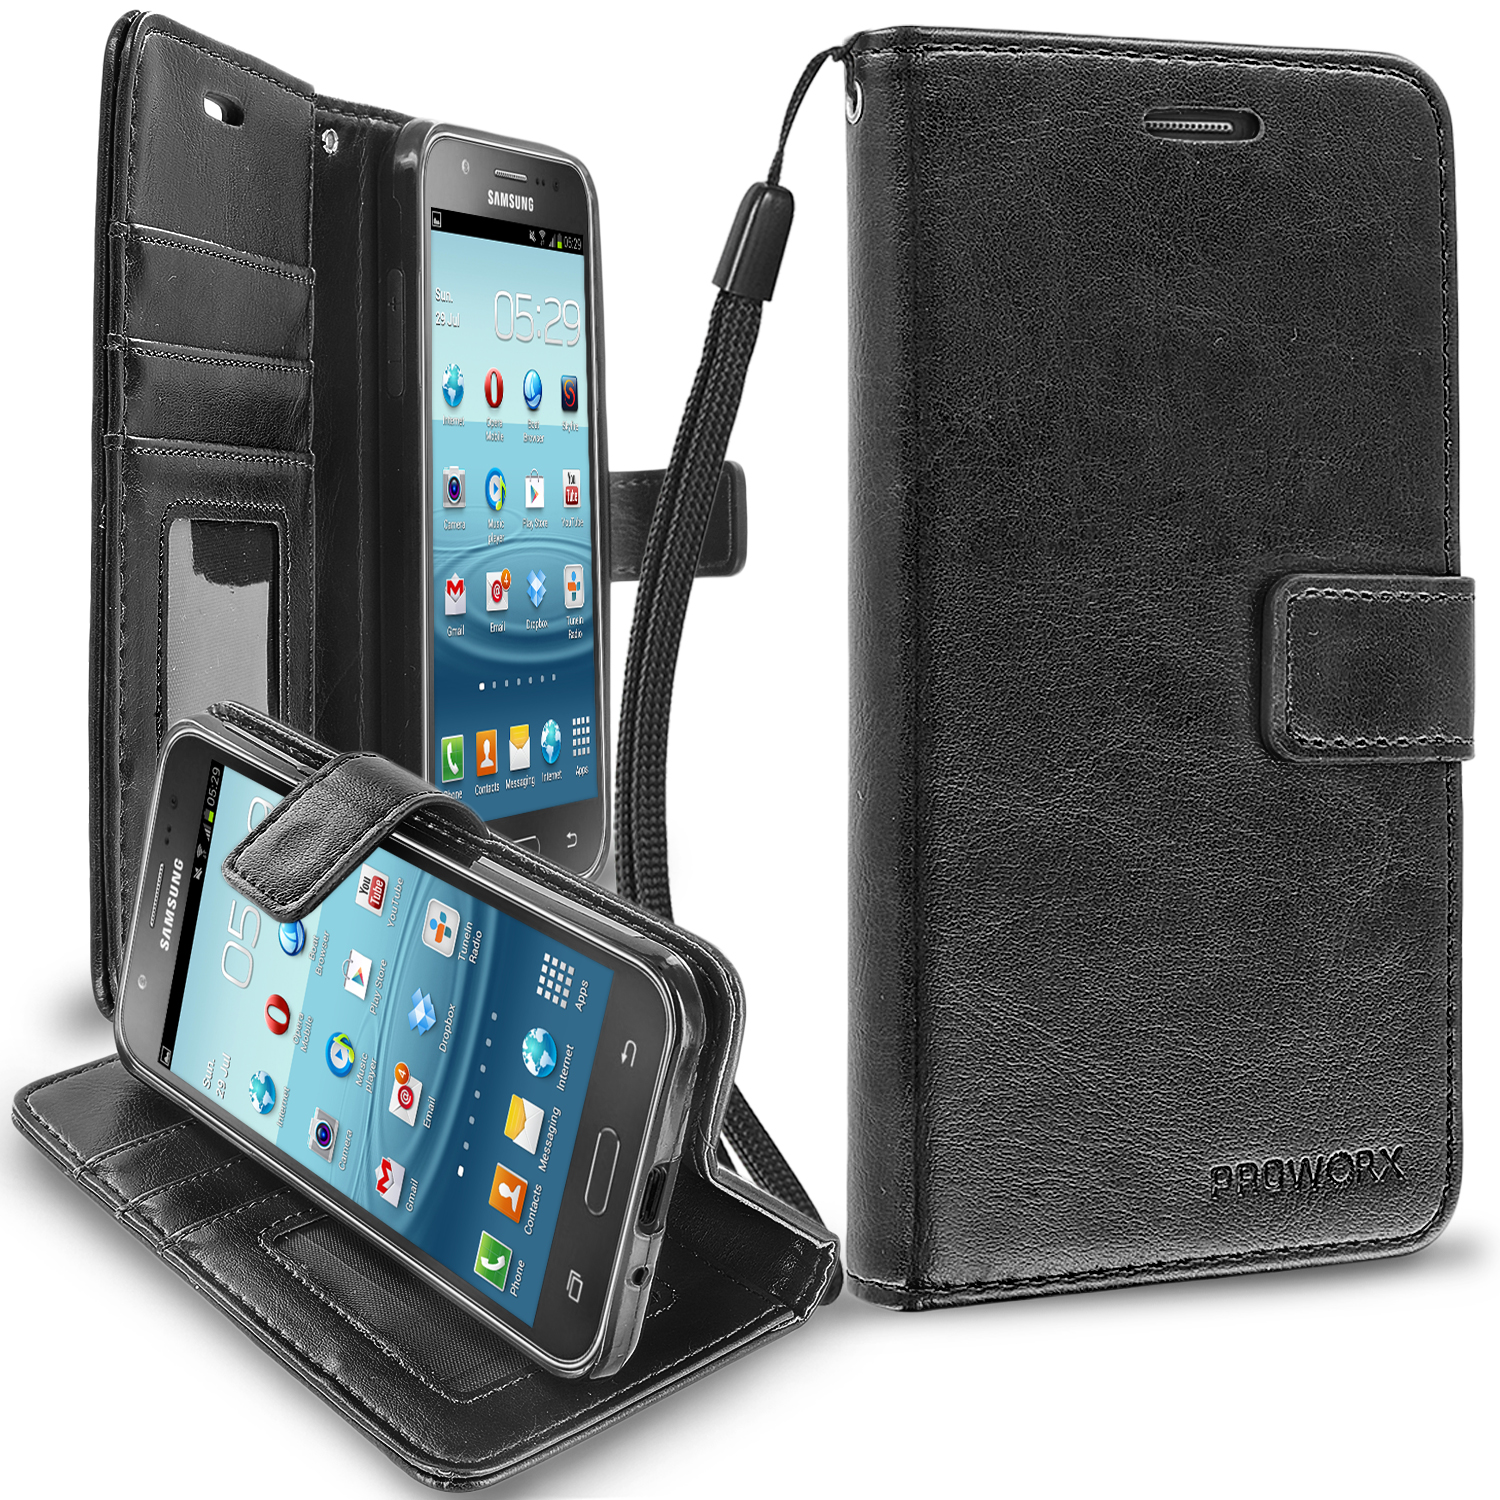 Samsung Galaxy J3 2016 Amp Prime Express Prime Black ProWorx Wallet Case Luxury PU Leather Case Cover With Card Slots & Stand